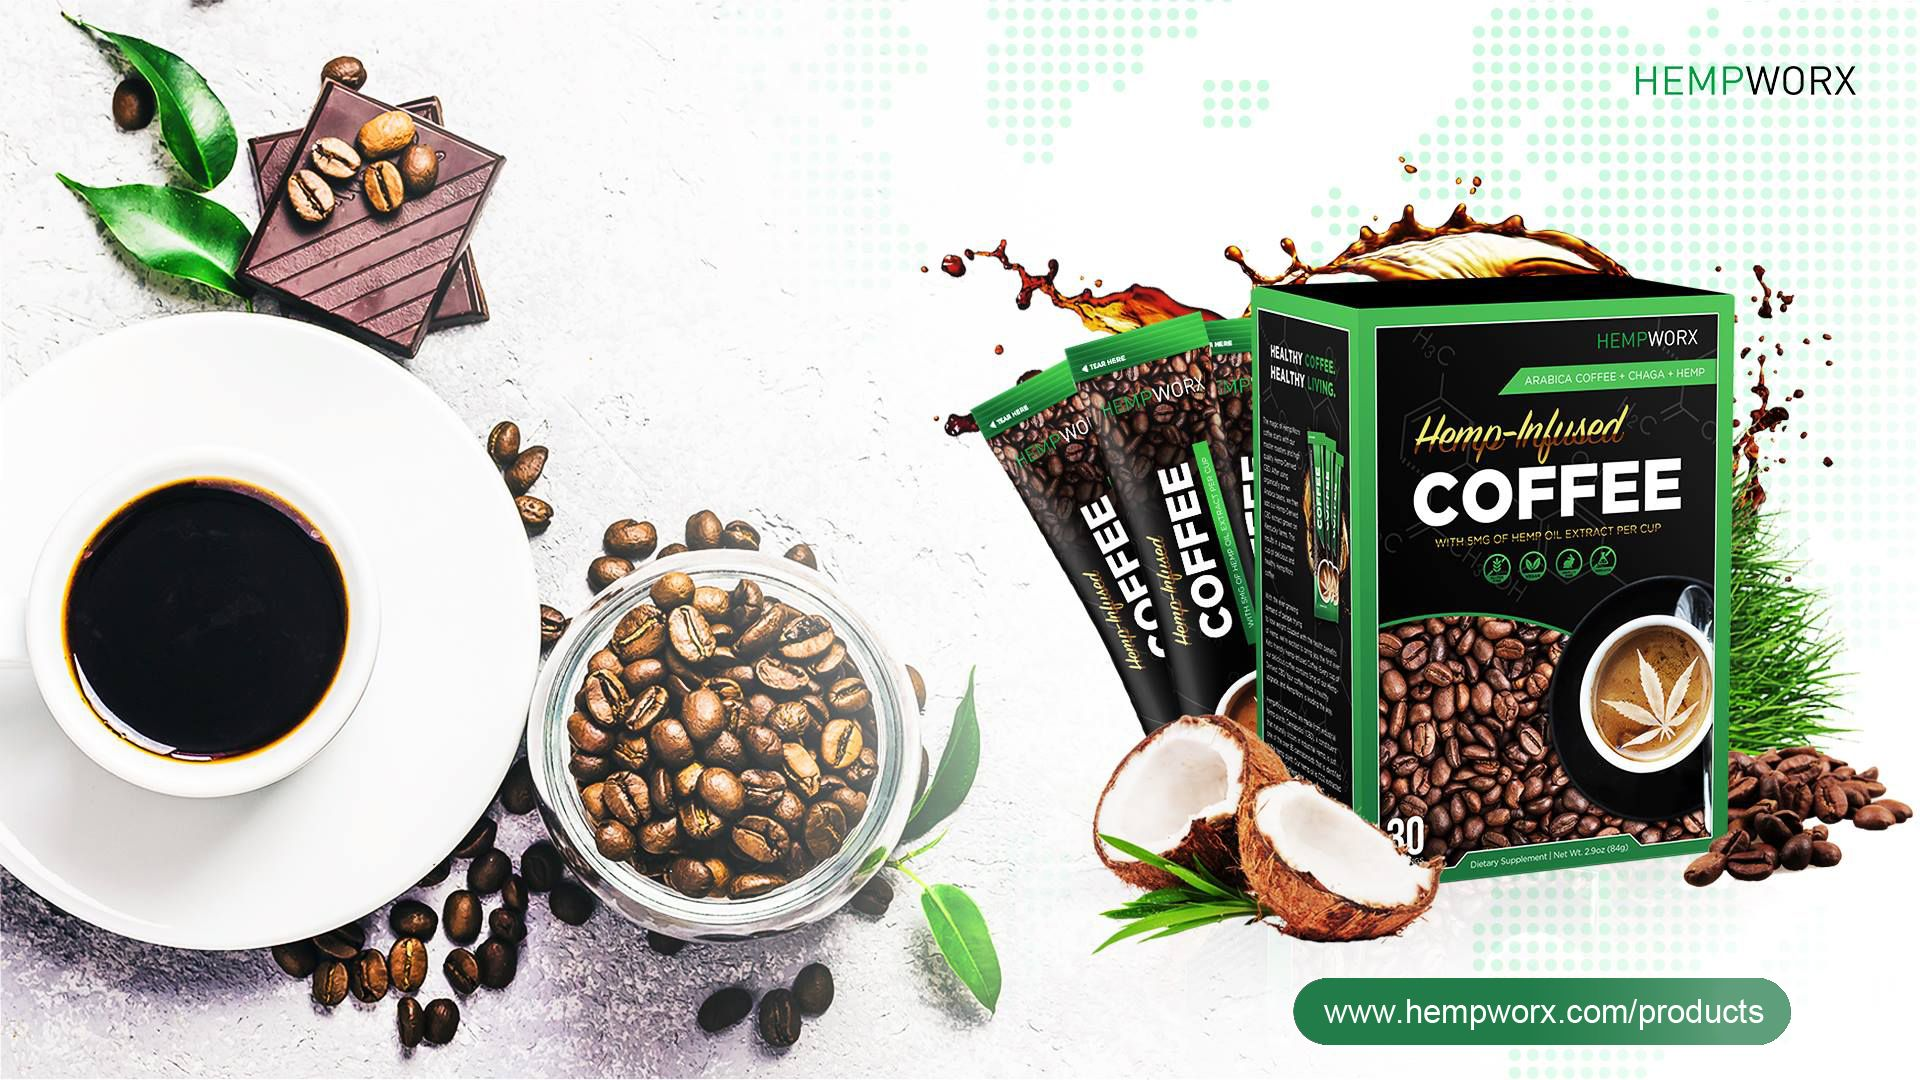 Coffee Arabica Health Benefits Hempworx Products To Learn More About The Health Benefits